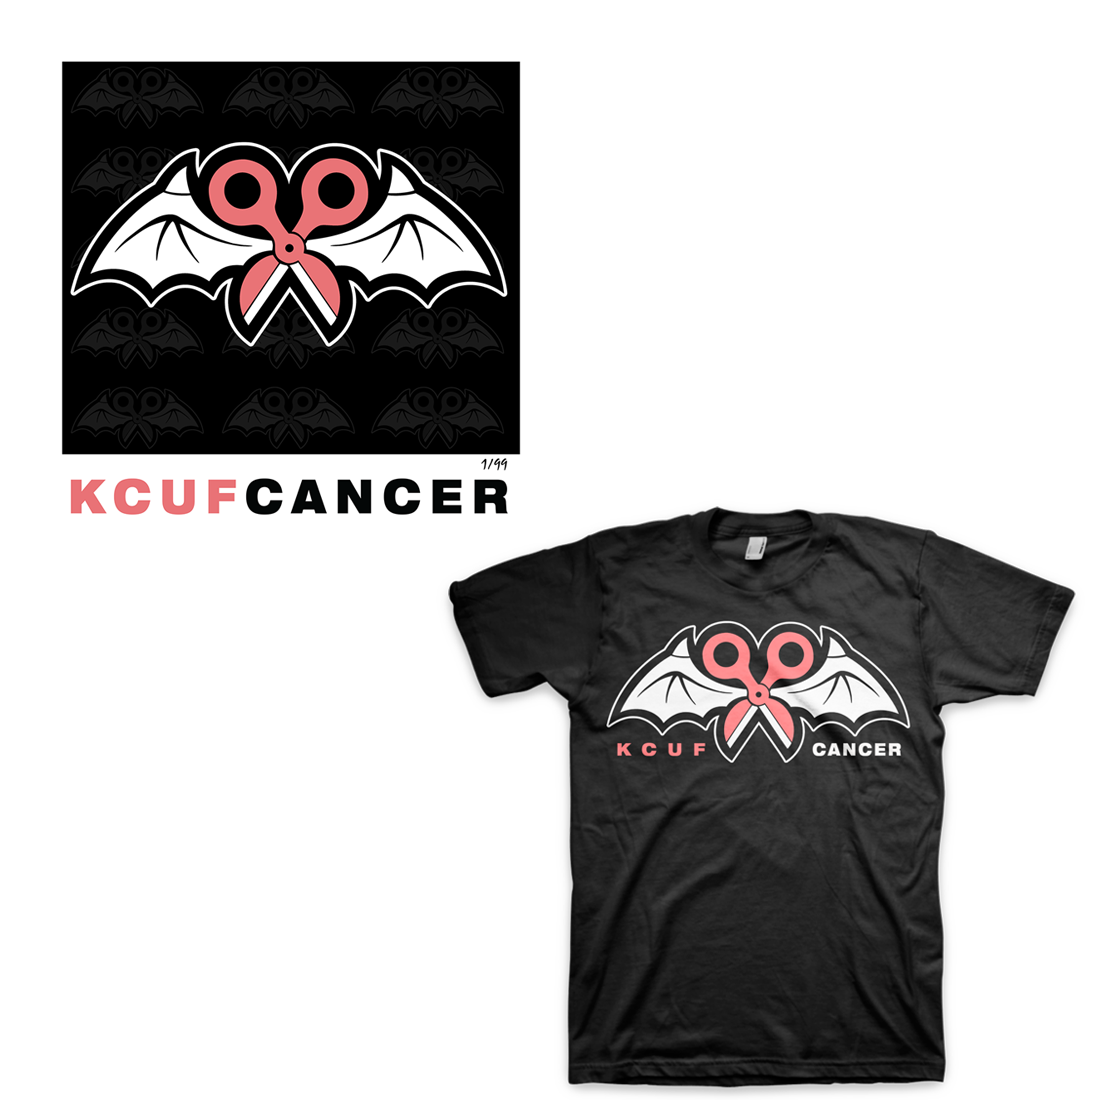 Limited Edition KCUF CANCER Men's Bundle